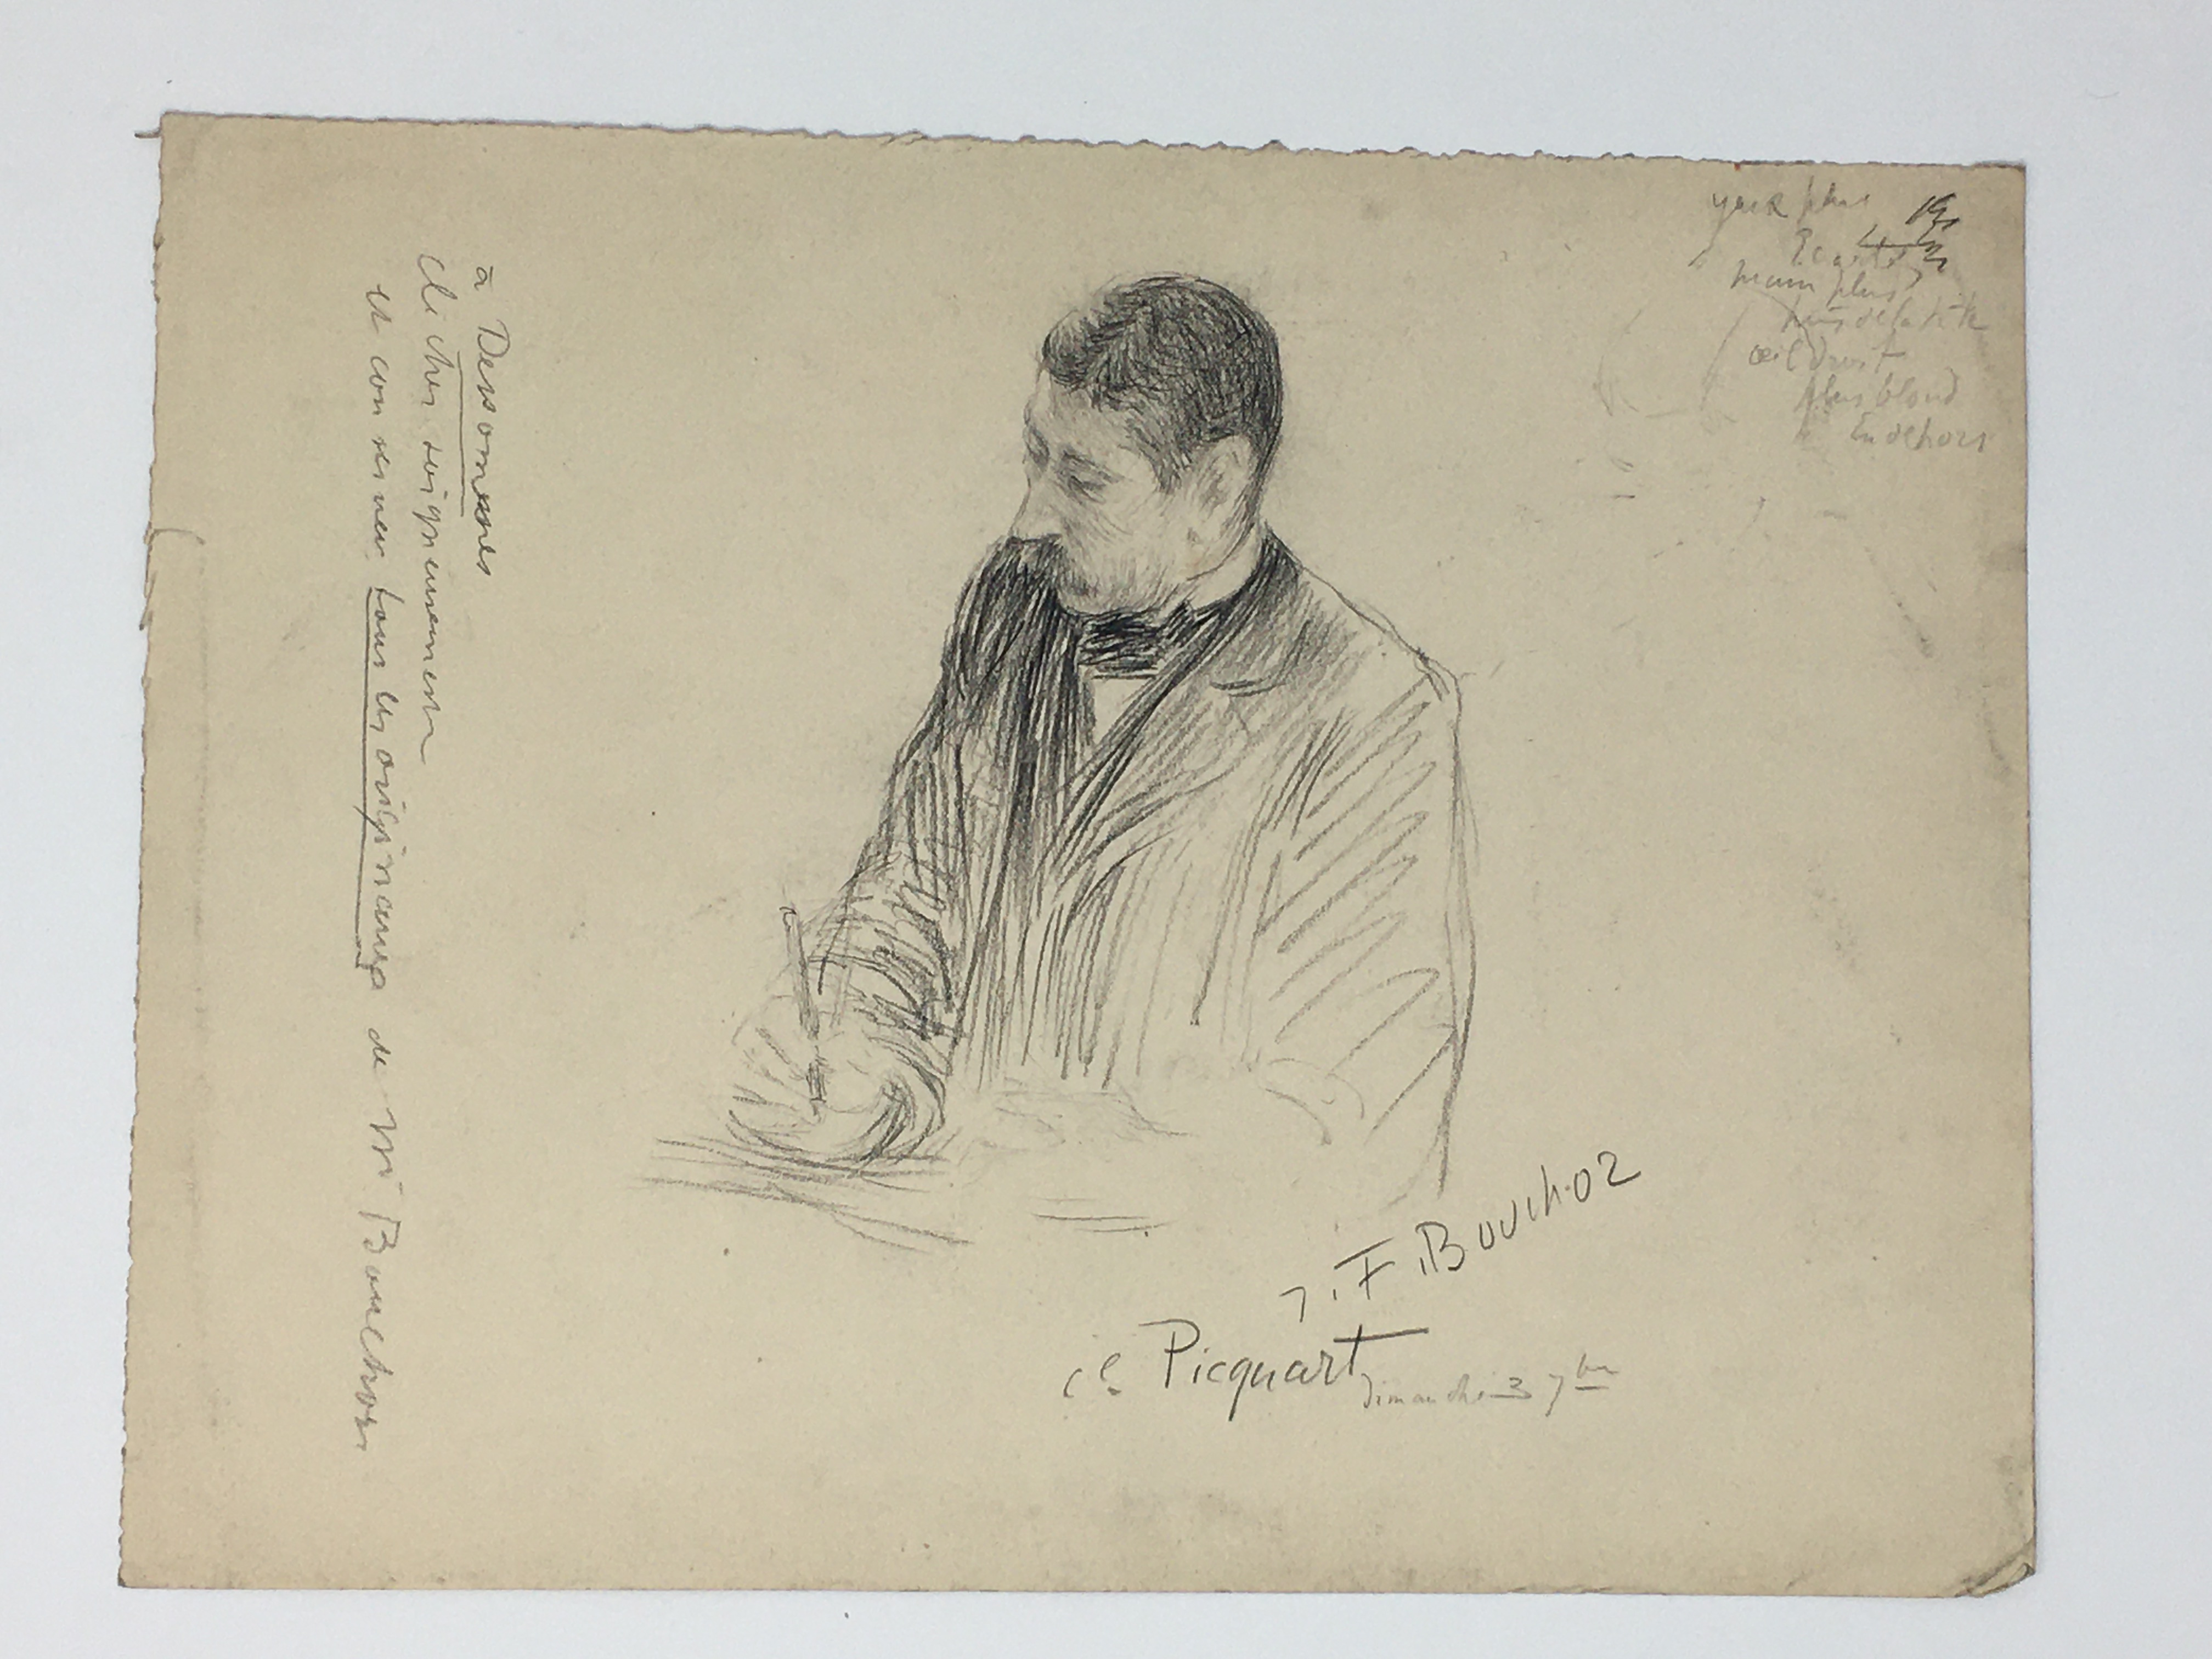 J'Accuse Newspaper, Emile Zola Quote, Signed Dreyfus Portrait, Rare Trial Drawings & Schwartzkoppen - Image 36 of 74